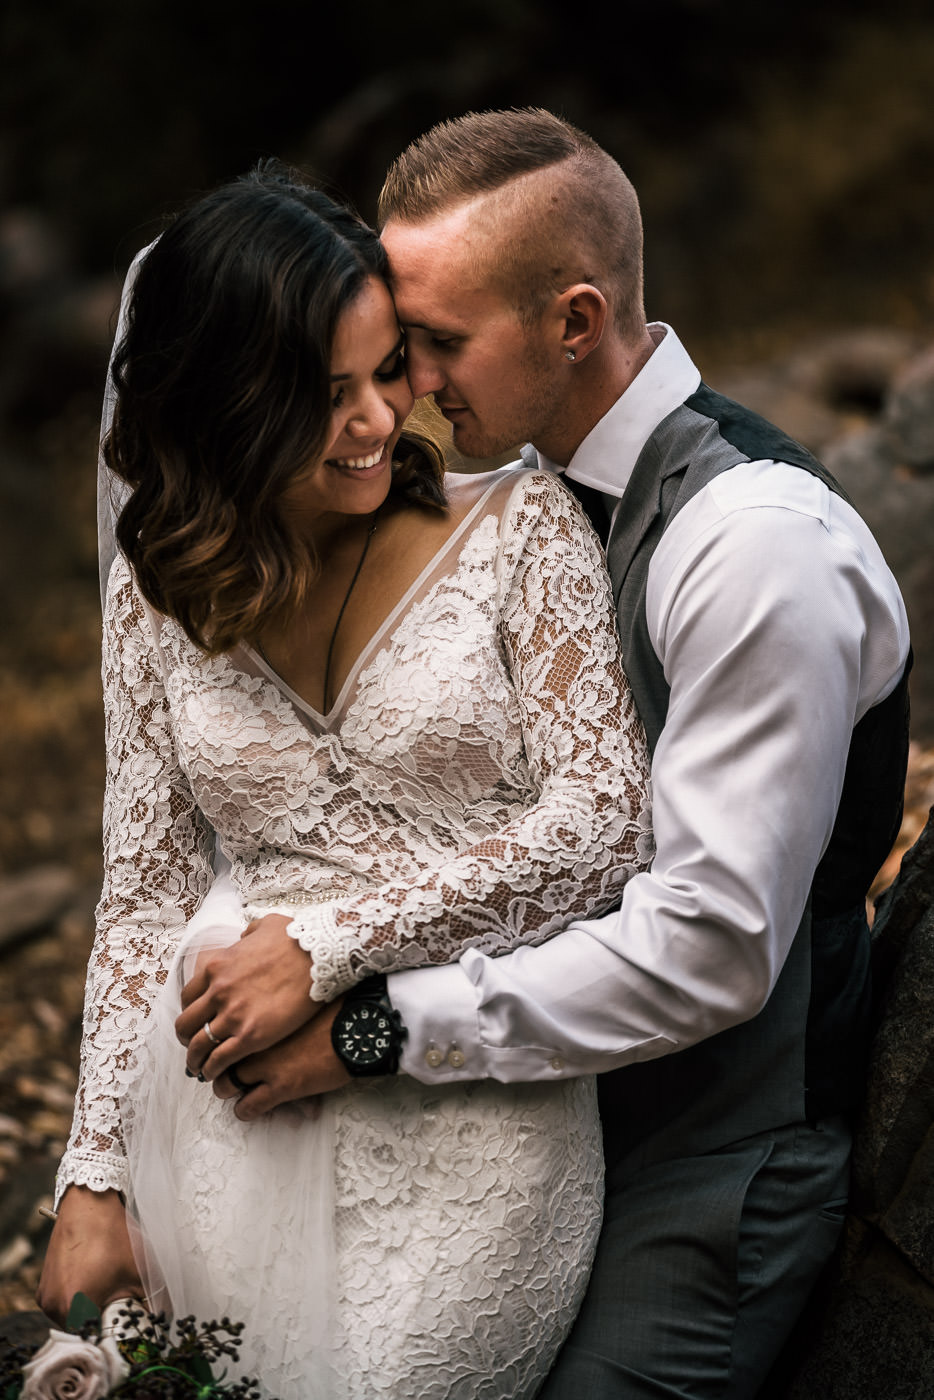 Bride and groom intimate portrait after beautiful elopement in winchester california